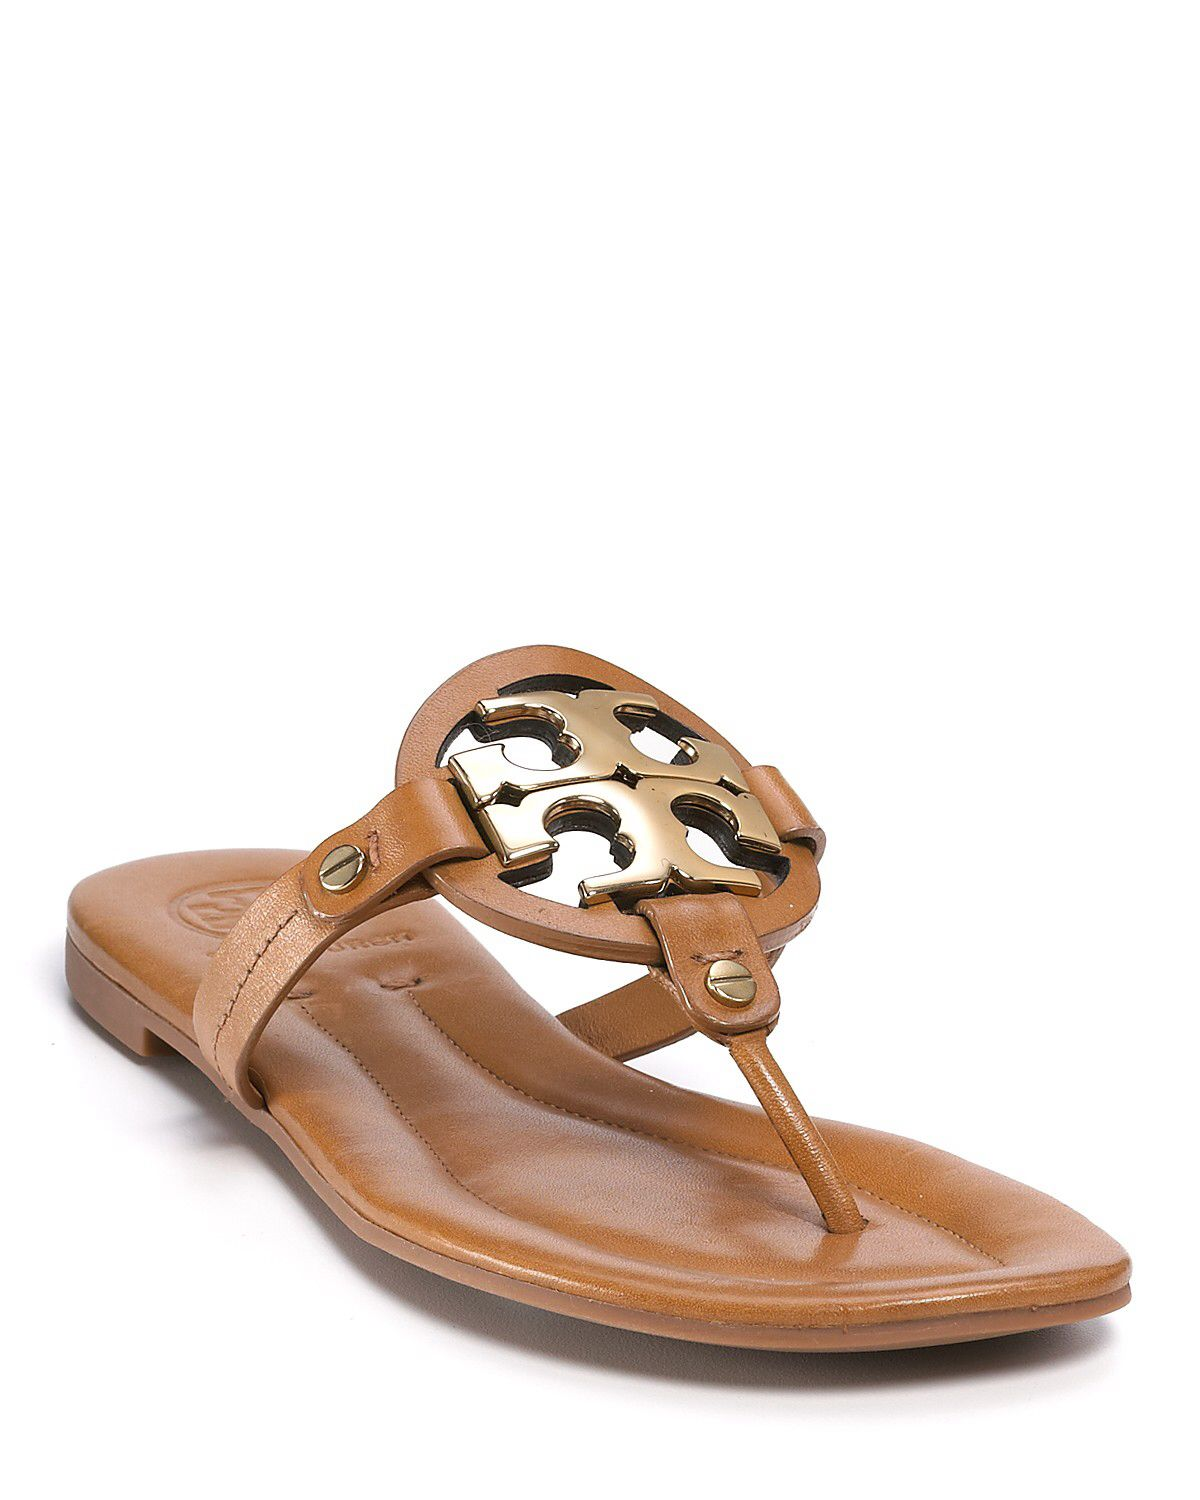 06e338215 Tory burch flats. Have wanted these for so long!